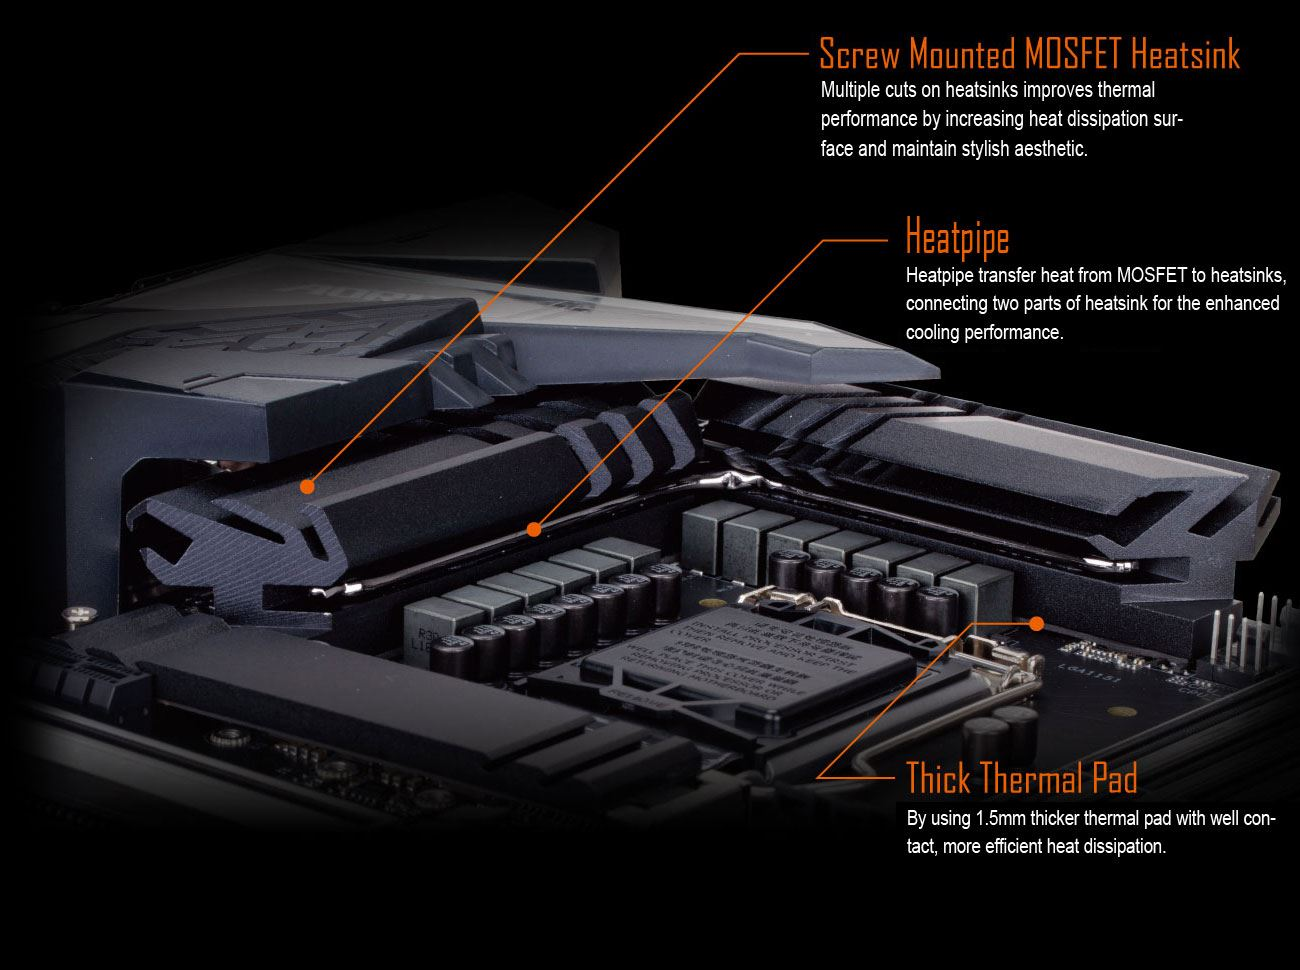 Gigabyte Z390 Aorus Pro Wifi Lga 1151 Chipset Atx Motherboard Reverse Camera Wiring Overclockers Uk Forums By Combining 2 Heatsinks With Heatpipe Thick Thermal Pad Providing Ultimate Mosfet Cooling Performance For Enthusiasts And Gamers